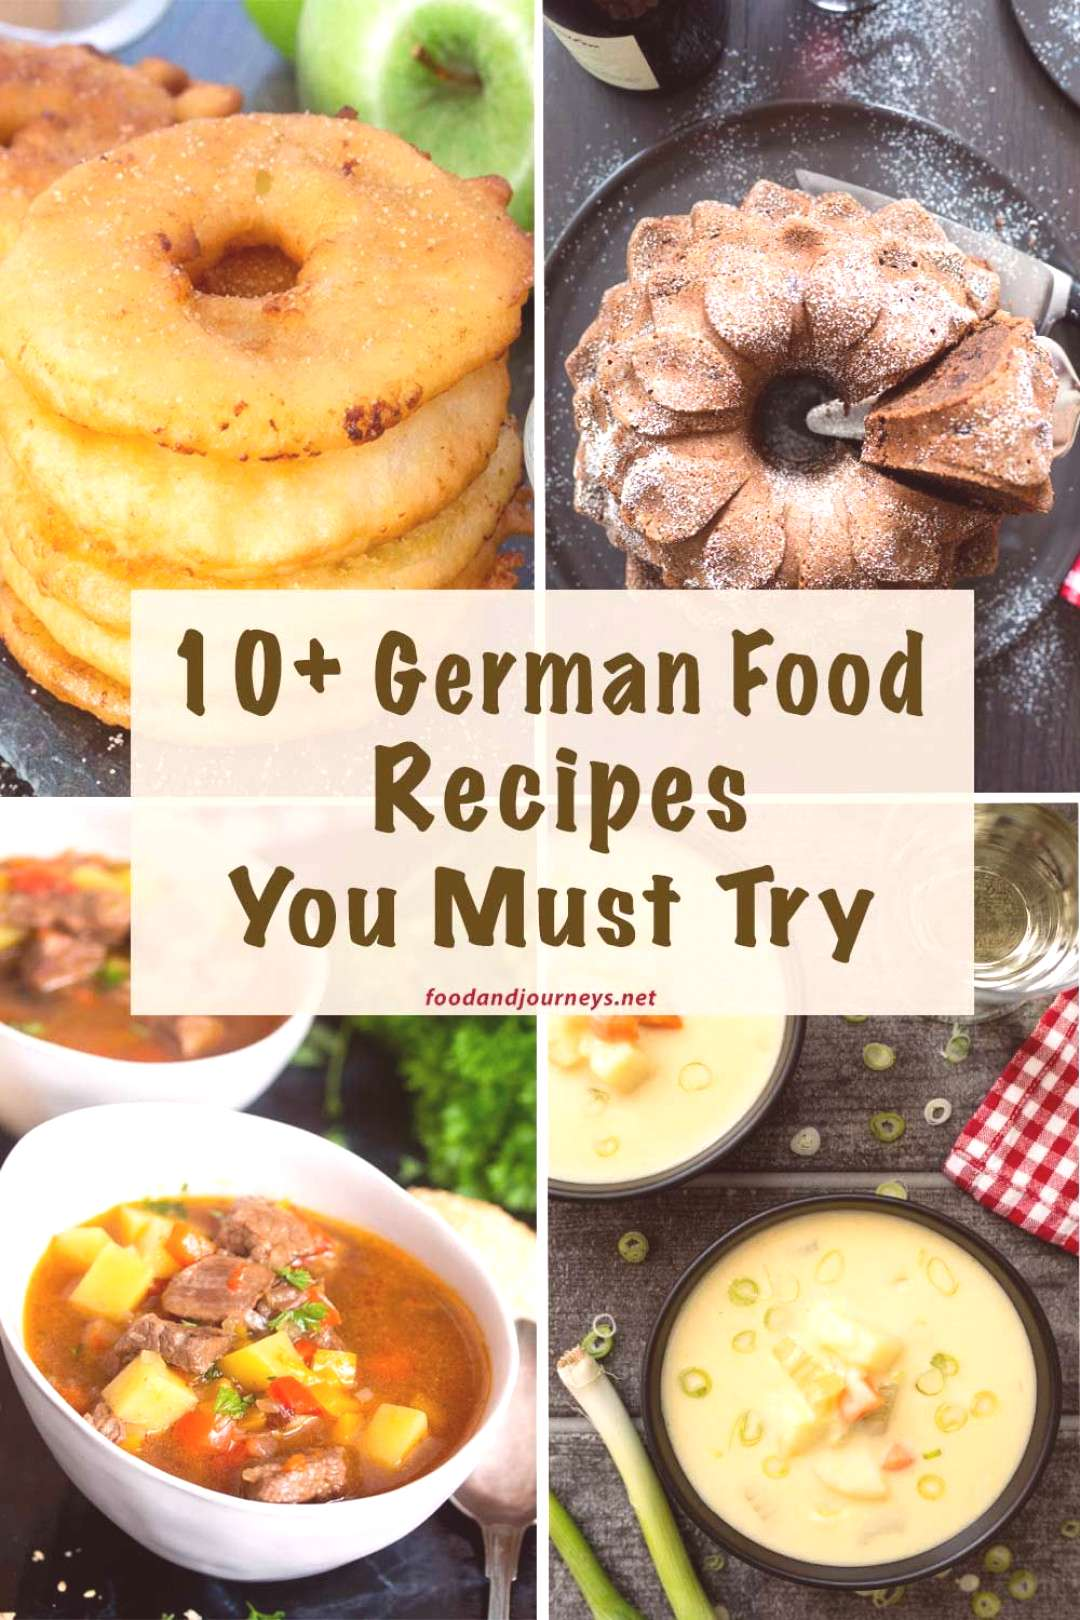 10+ German Food Recipes You Must Try A collection of authentic and not-so-traditional German recipe